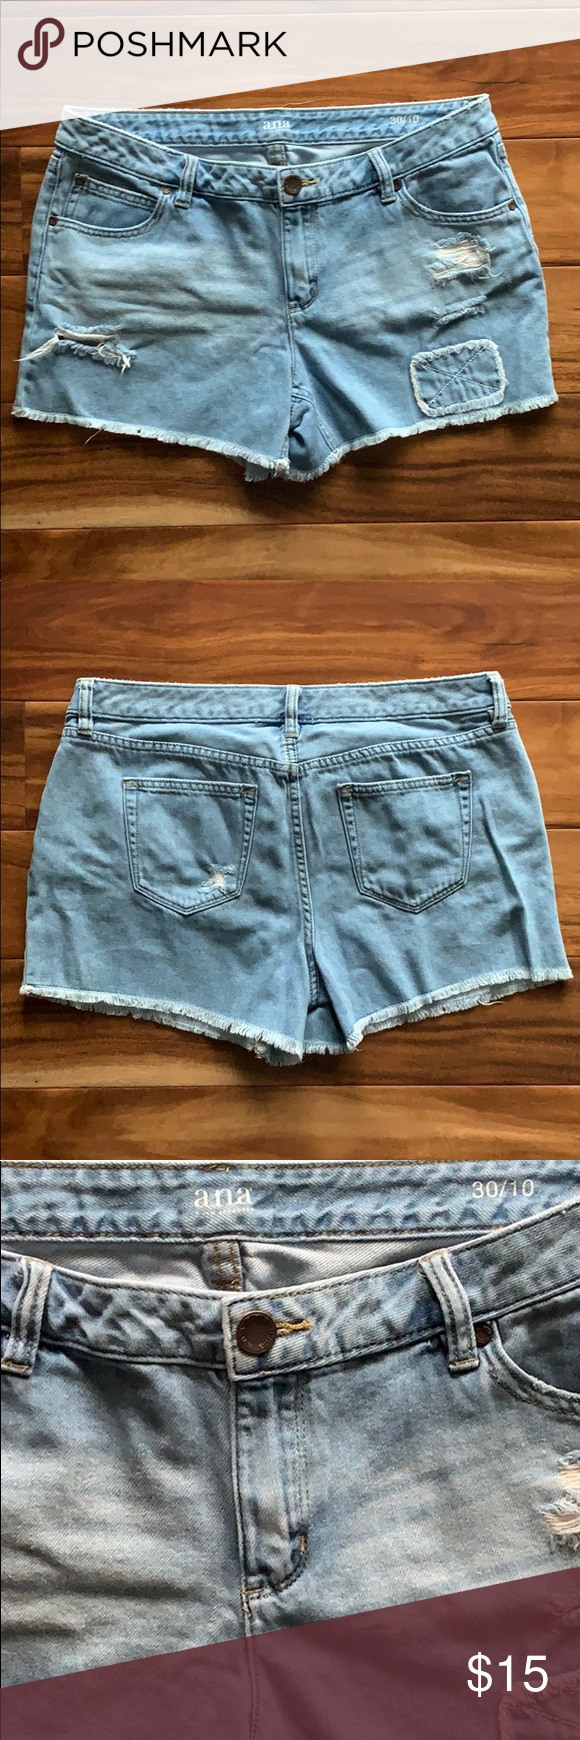 A.N.A Denim Cutoff Shorts A.N.A. Denim Shorts Bottom has cutoff fringe look Size 10 Has slight stretch Good condition a.n.a Shorts Jean Shorts #denimcutoffshorts A.N.A Denim Cutoff Shorts A.N.A. Denim Shorts Bottom has cutoff fringe look Size 10 Has slight stretch Good condition a.n.a Shorts Jean Shorts #denimcutoffshorts